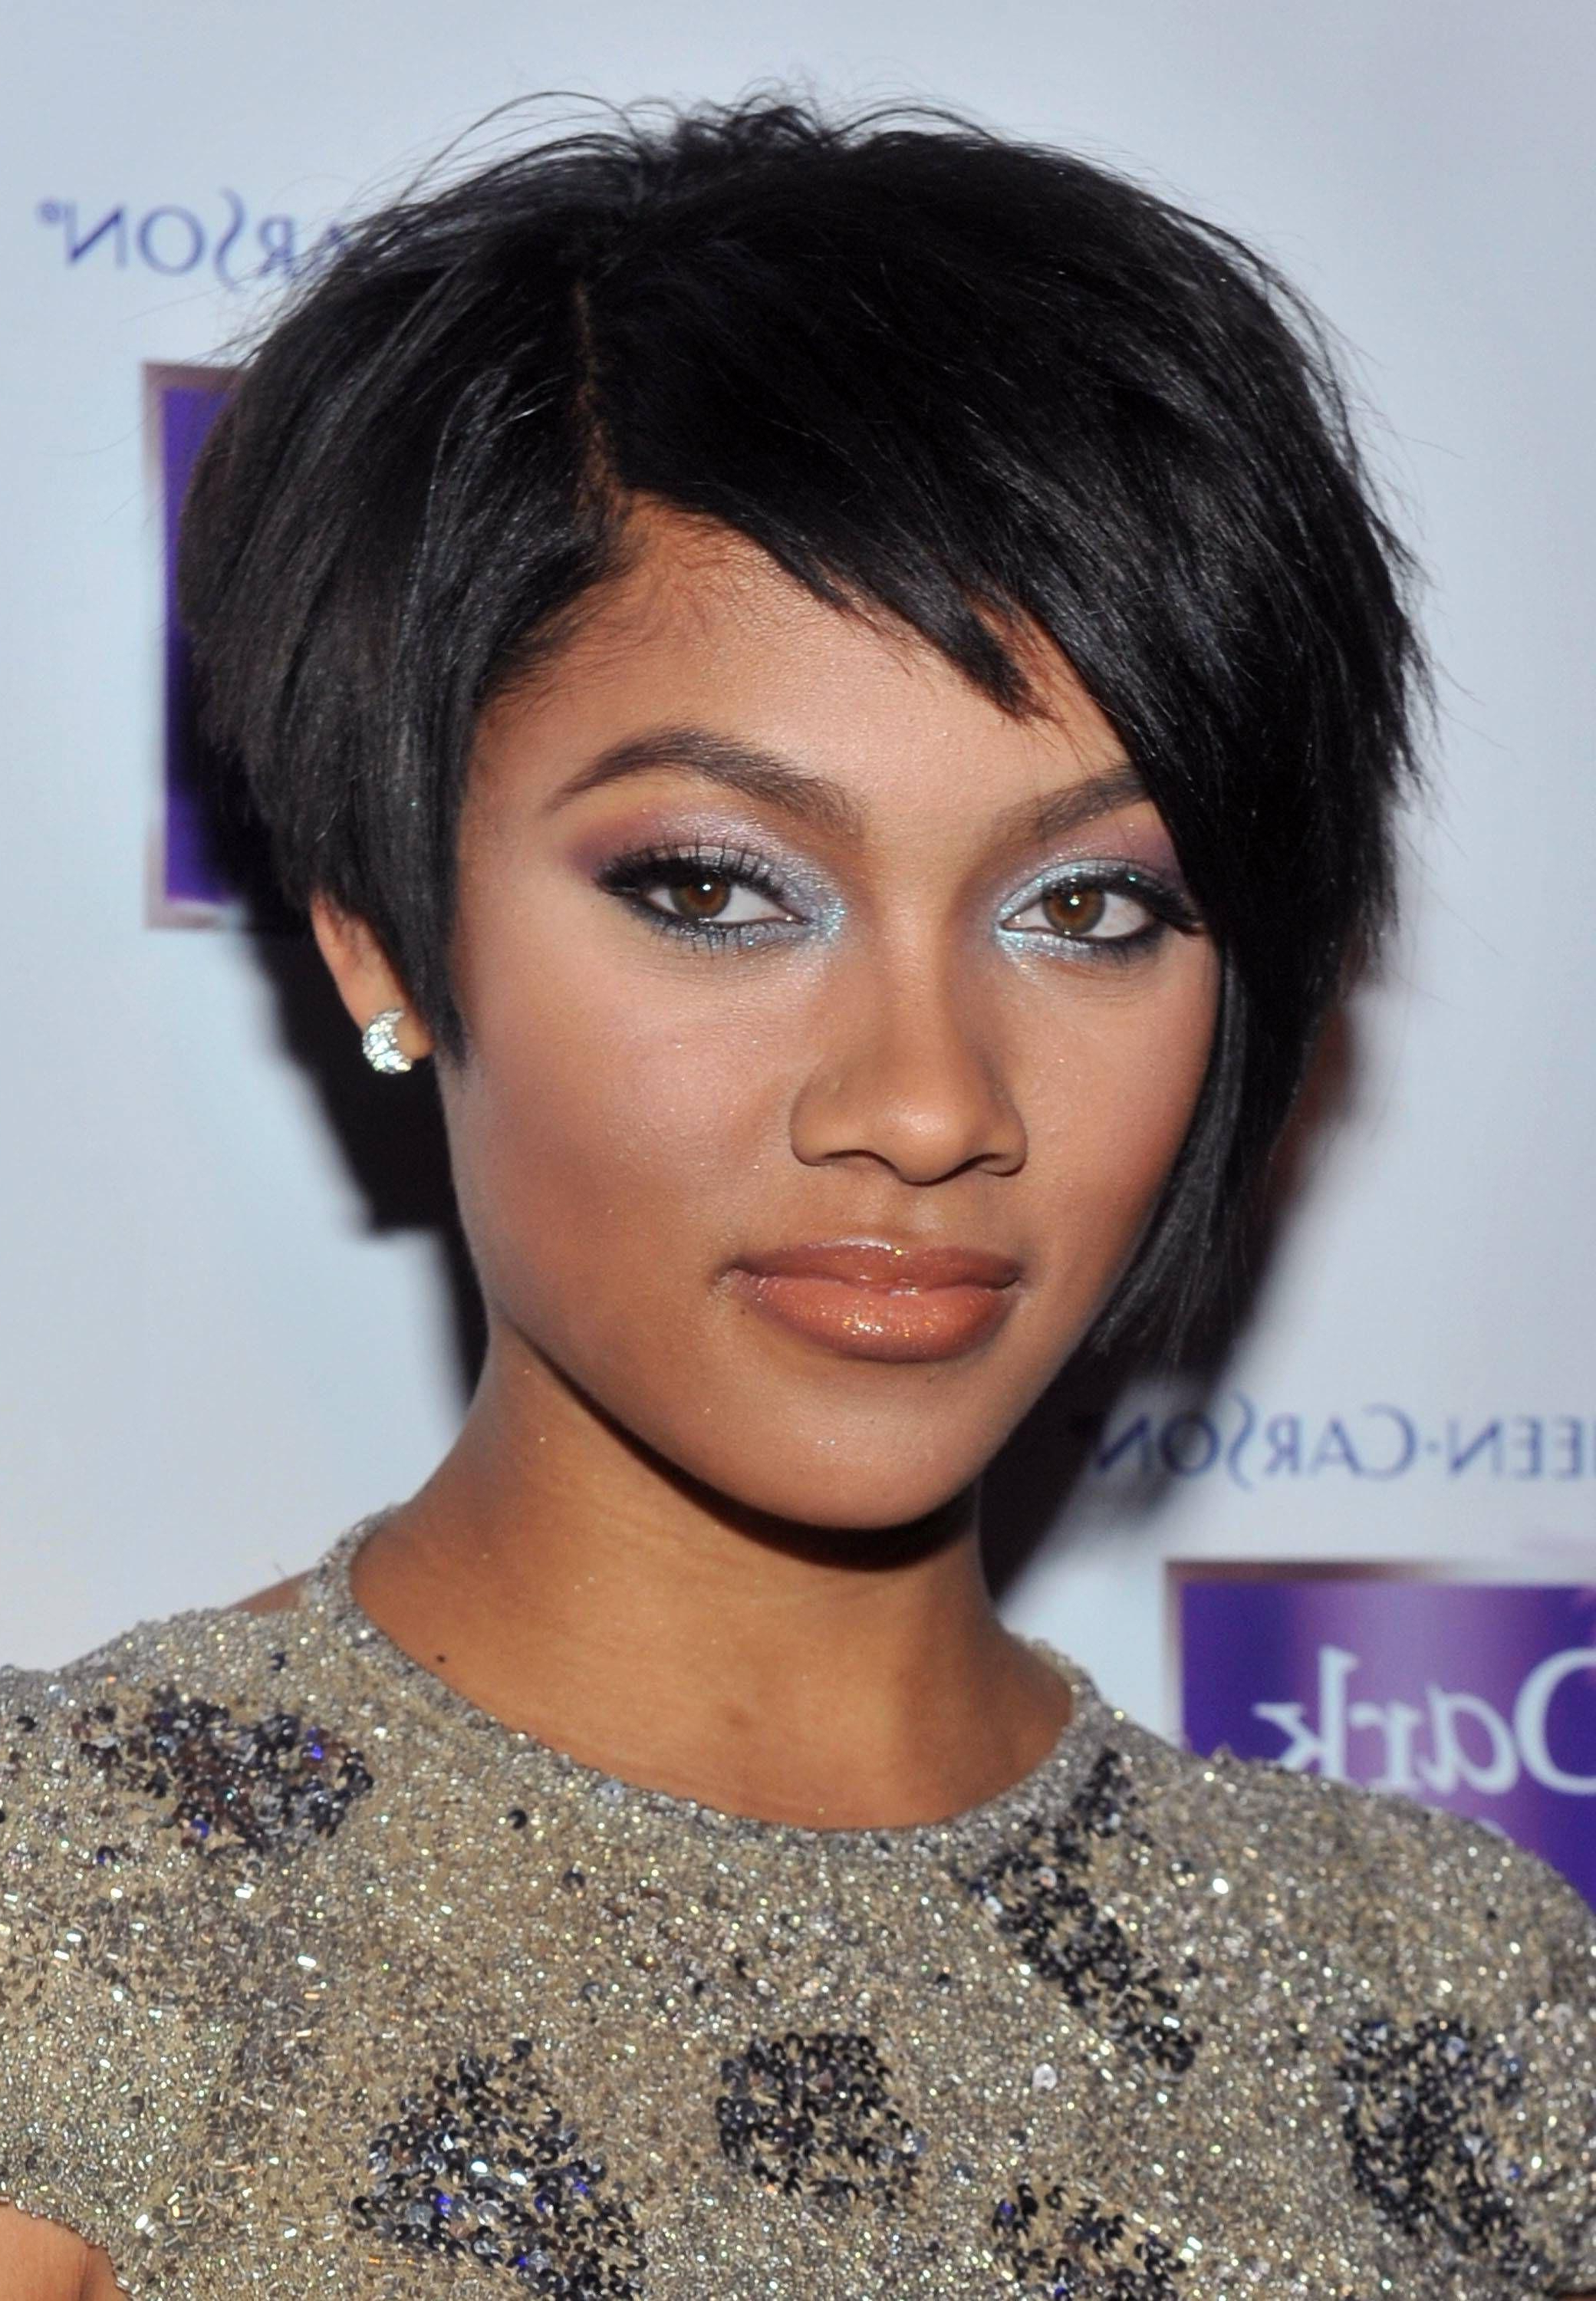 Beautiful Short Hairstyles For Black Women With Round Faces 2016 Concept For Short Haircuts For Round Faces African American (View 15 of 25)